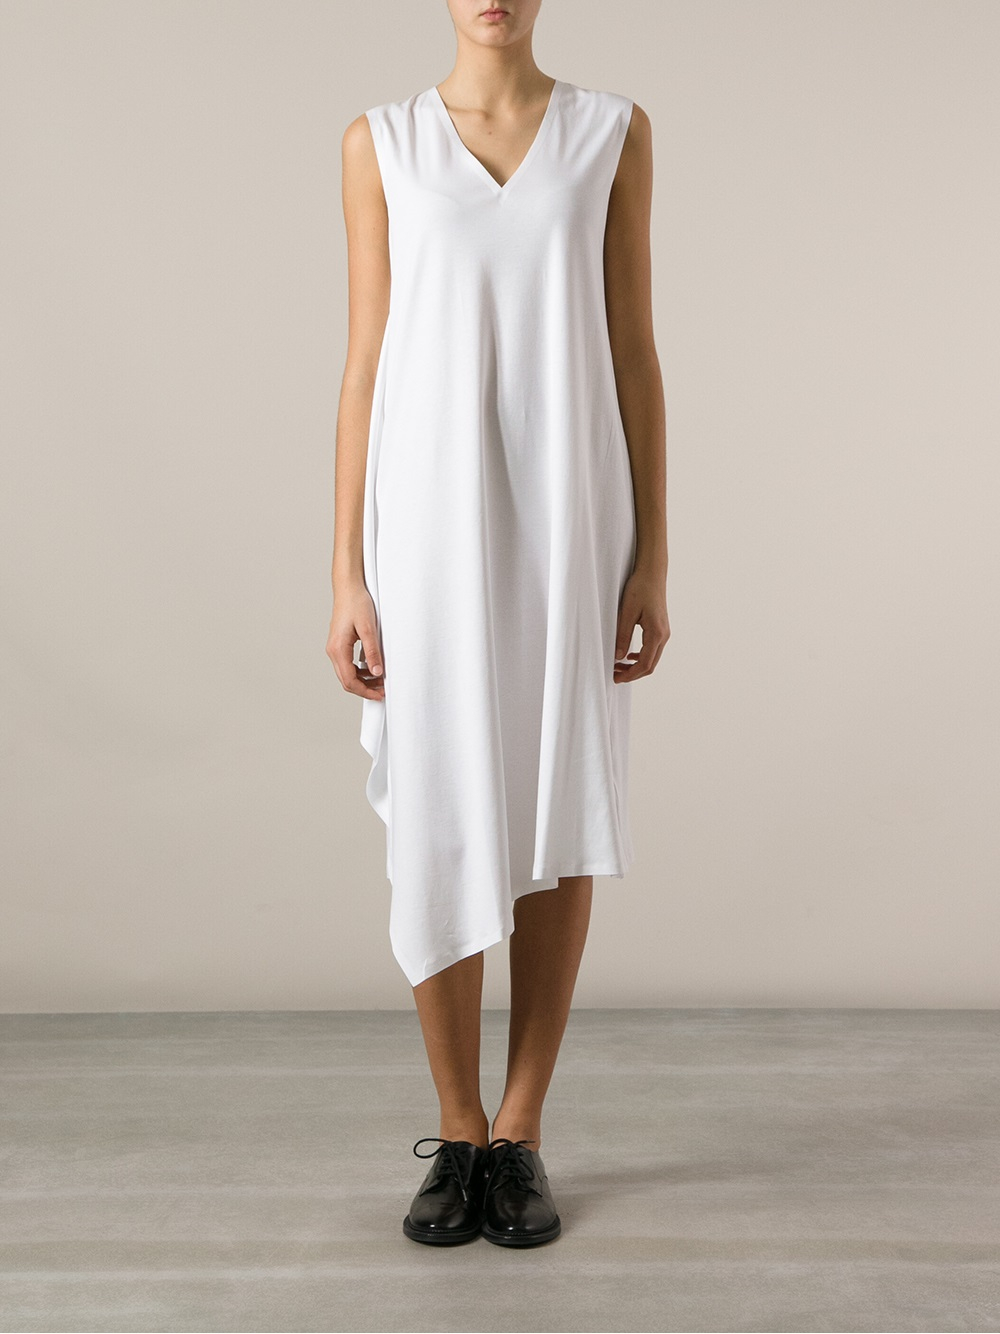 Mm6 by maison martin margiela draped shift dress in white for Mm6 maison margiela